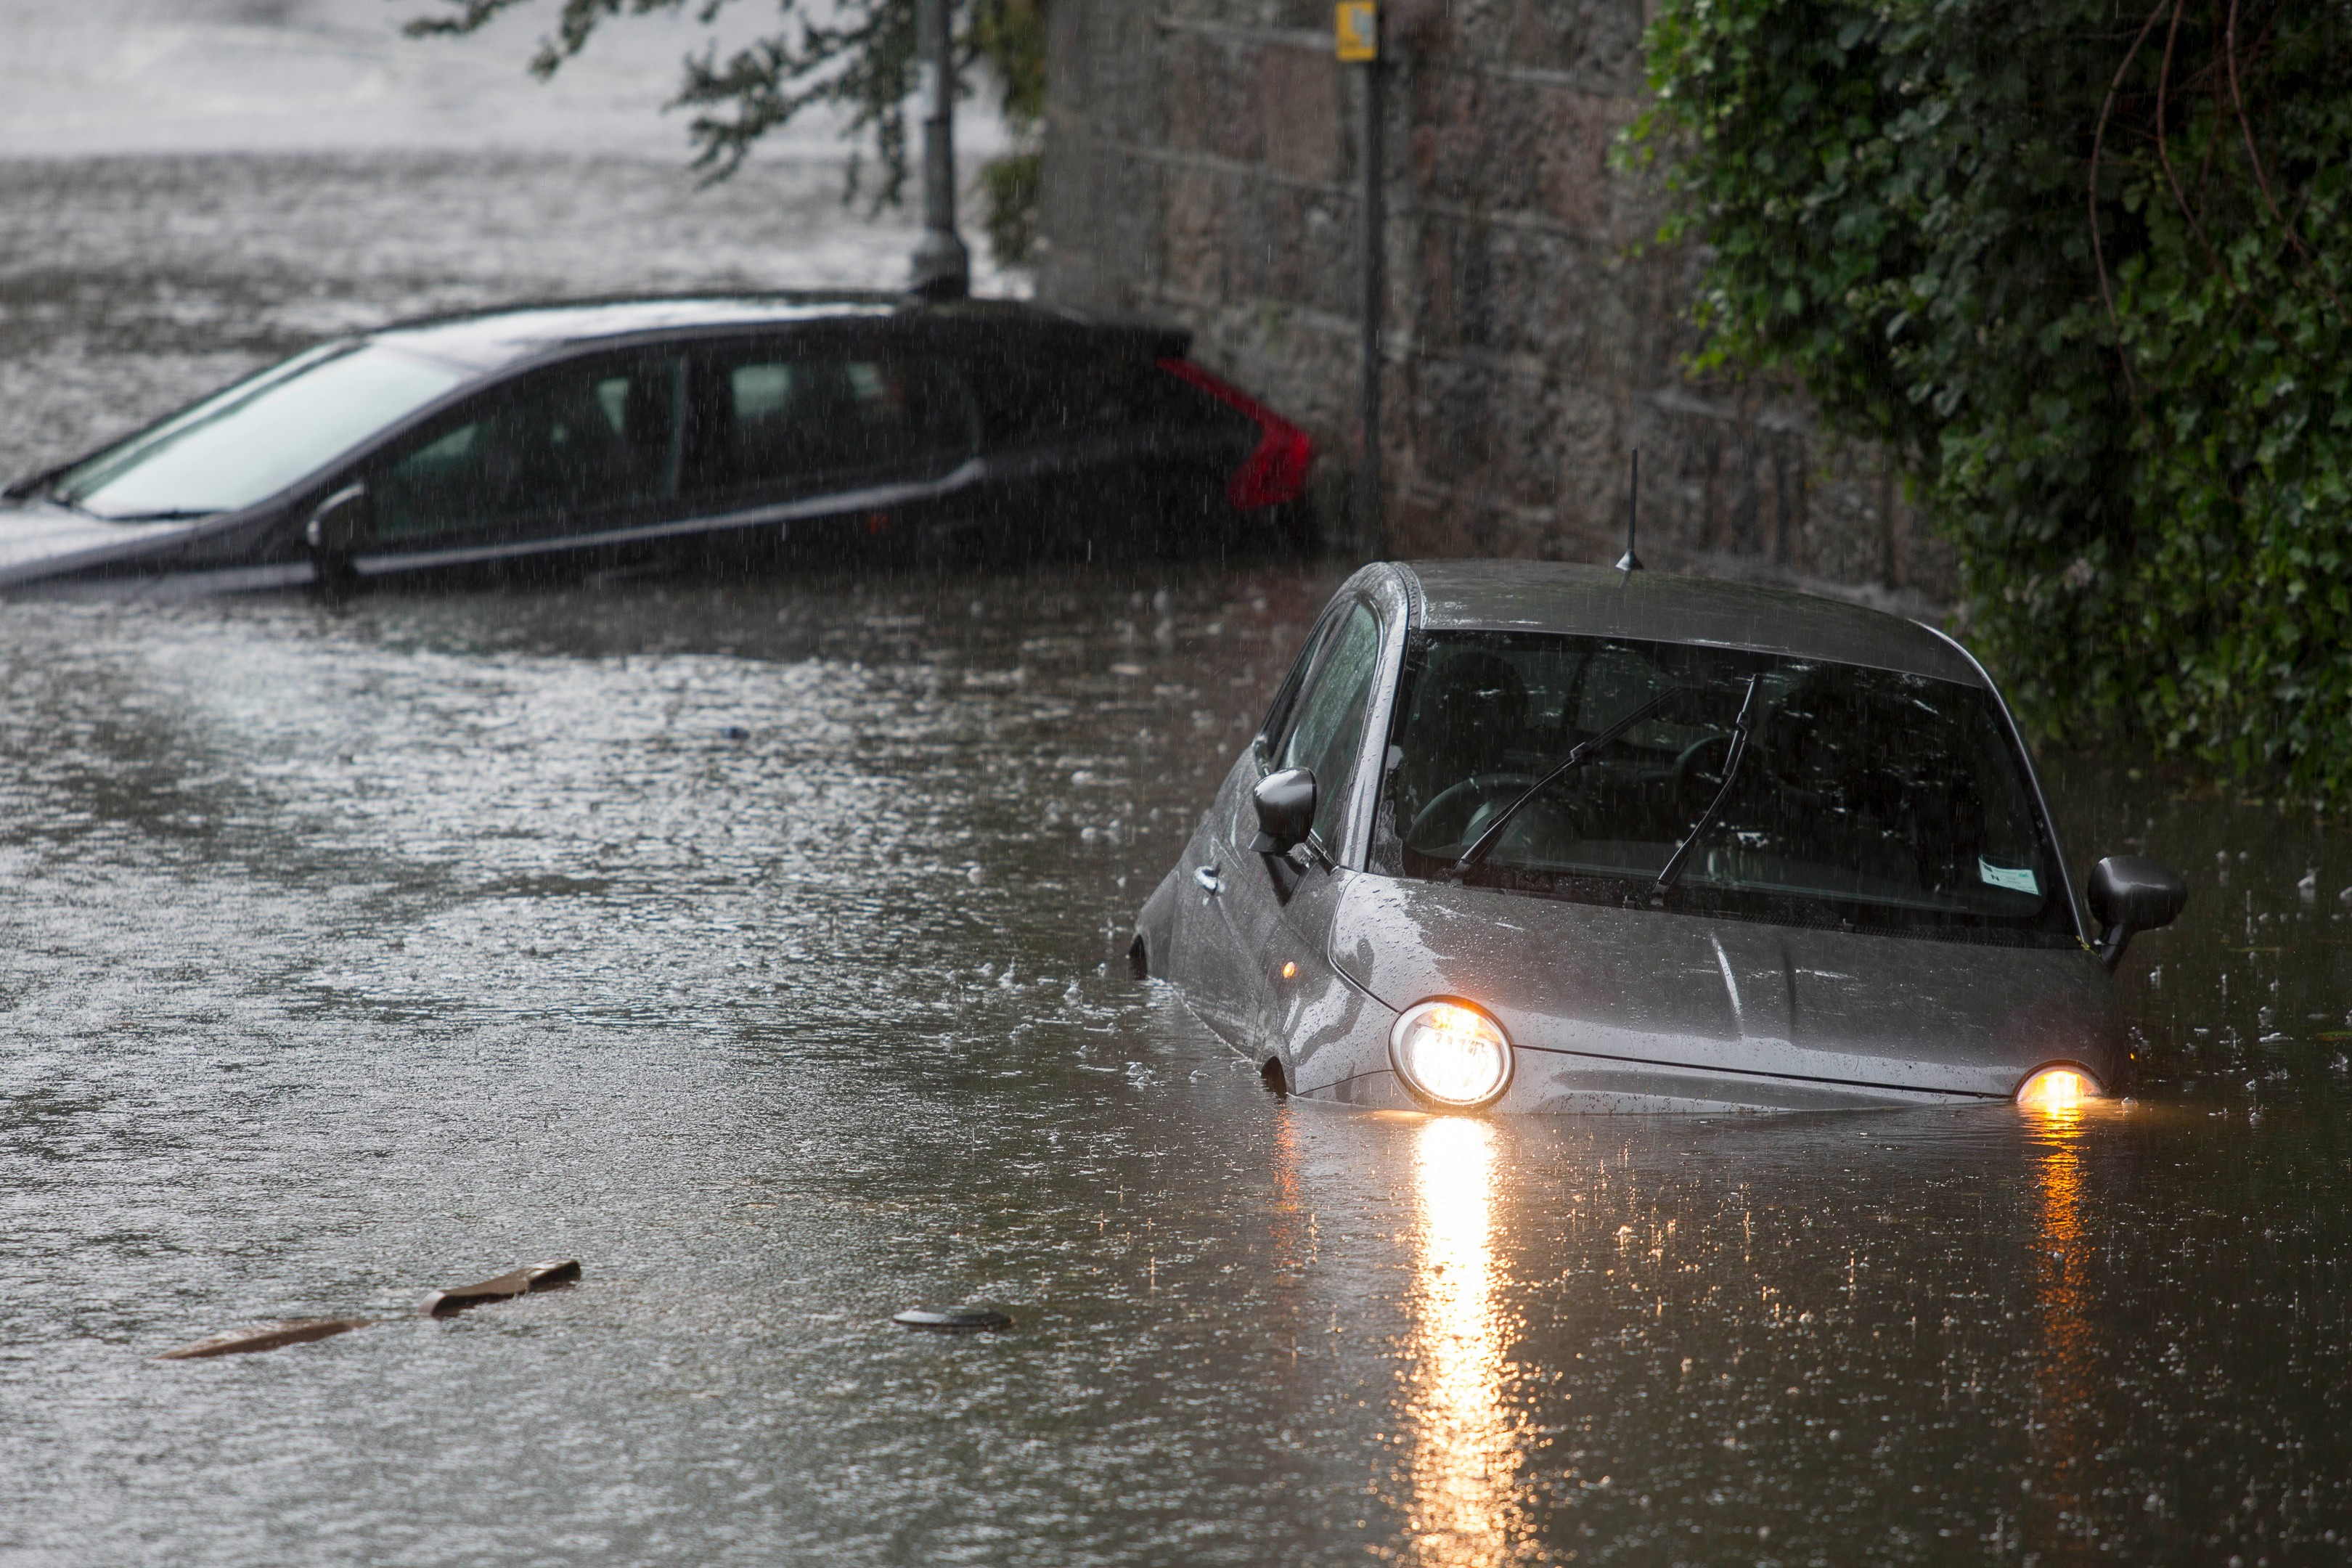 Flooding hit Aberdeen streets after torrential rain on July 7.